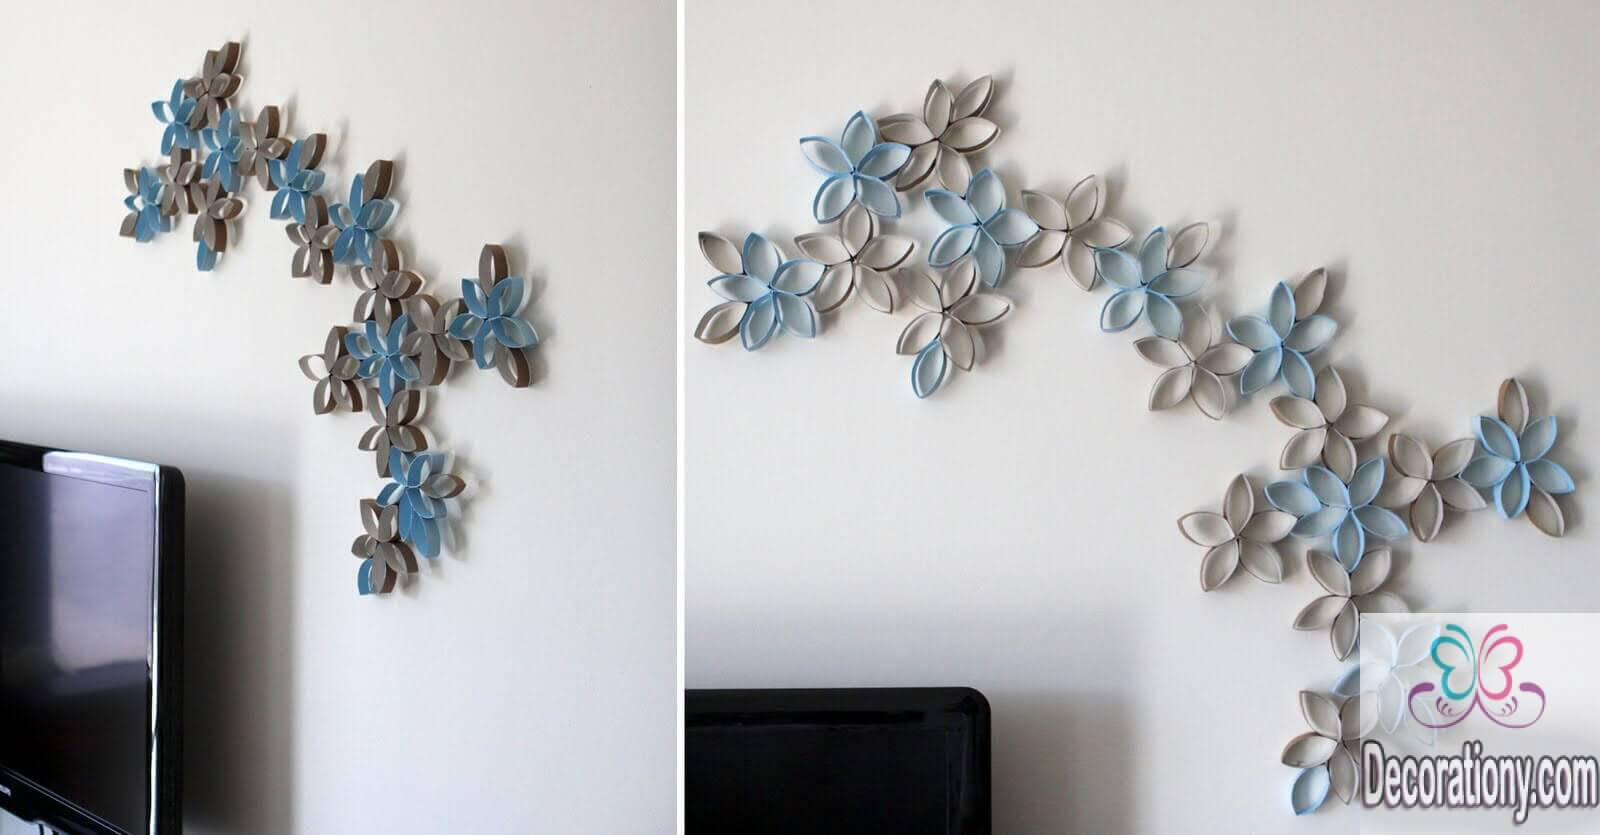 Wall Decor From Waste Materials : Living room wall decor ideas